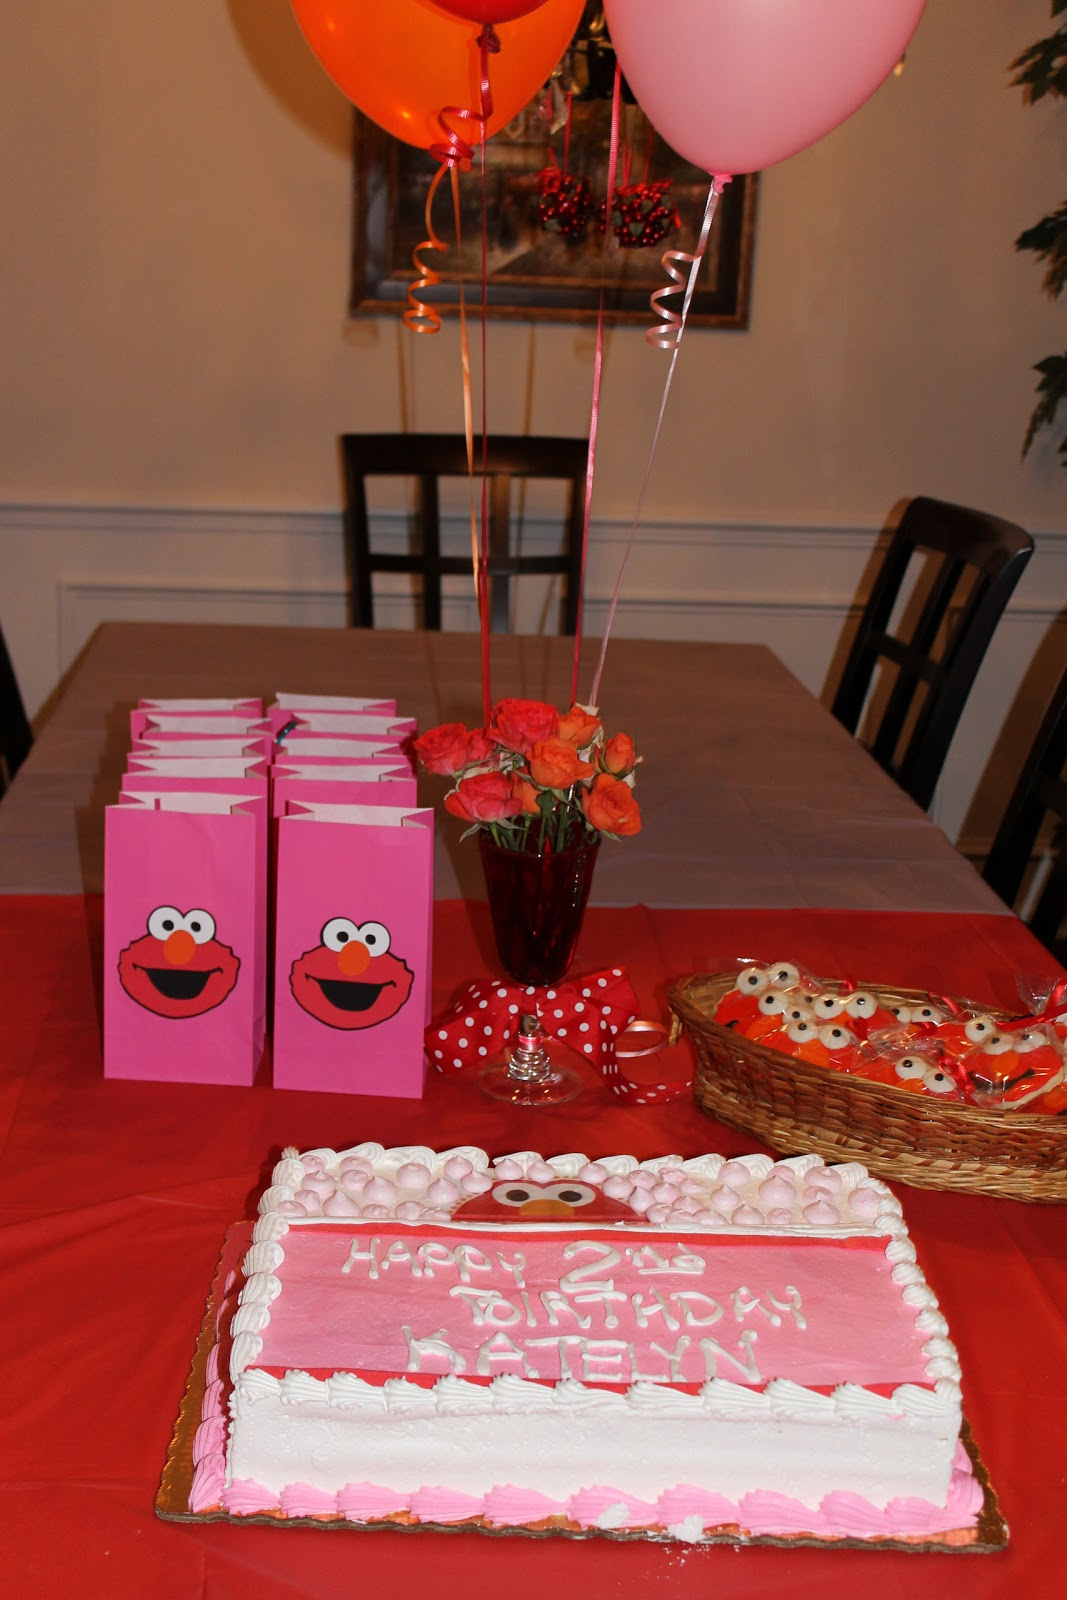 I Jumped At The Chance To Help With Her Elmo Themed 2nd Birthday Party We Wanted It Be A Girly So Made Sure Use Lots Of Pink